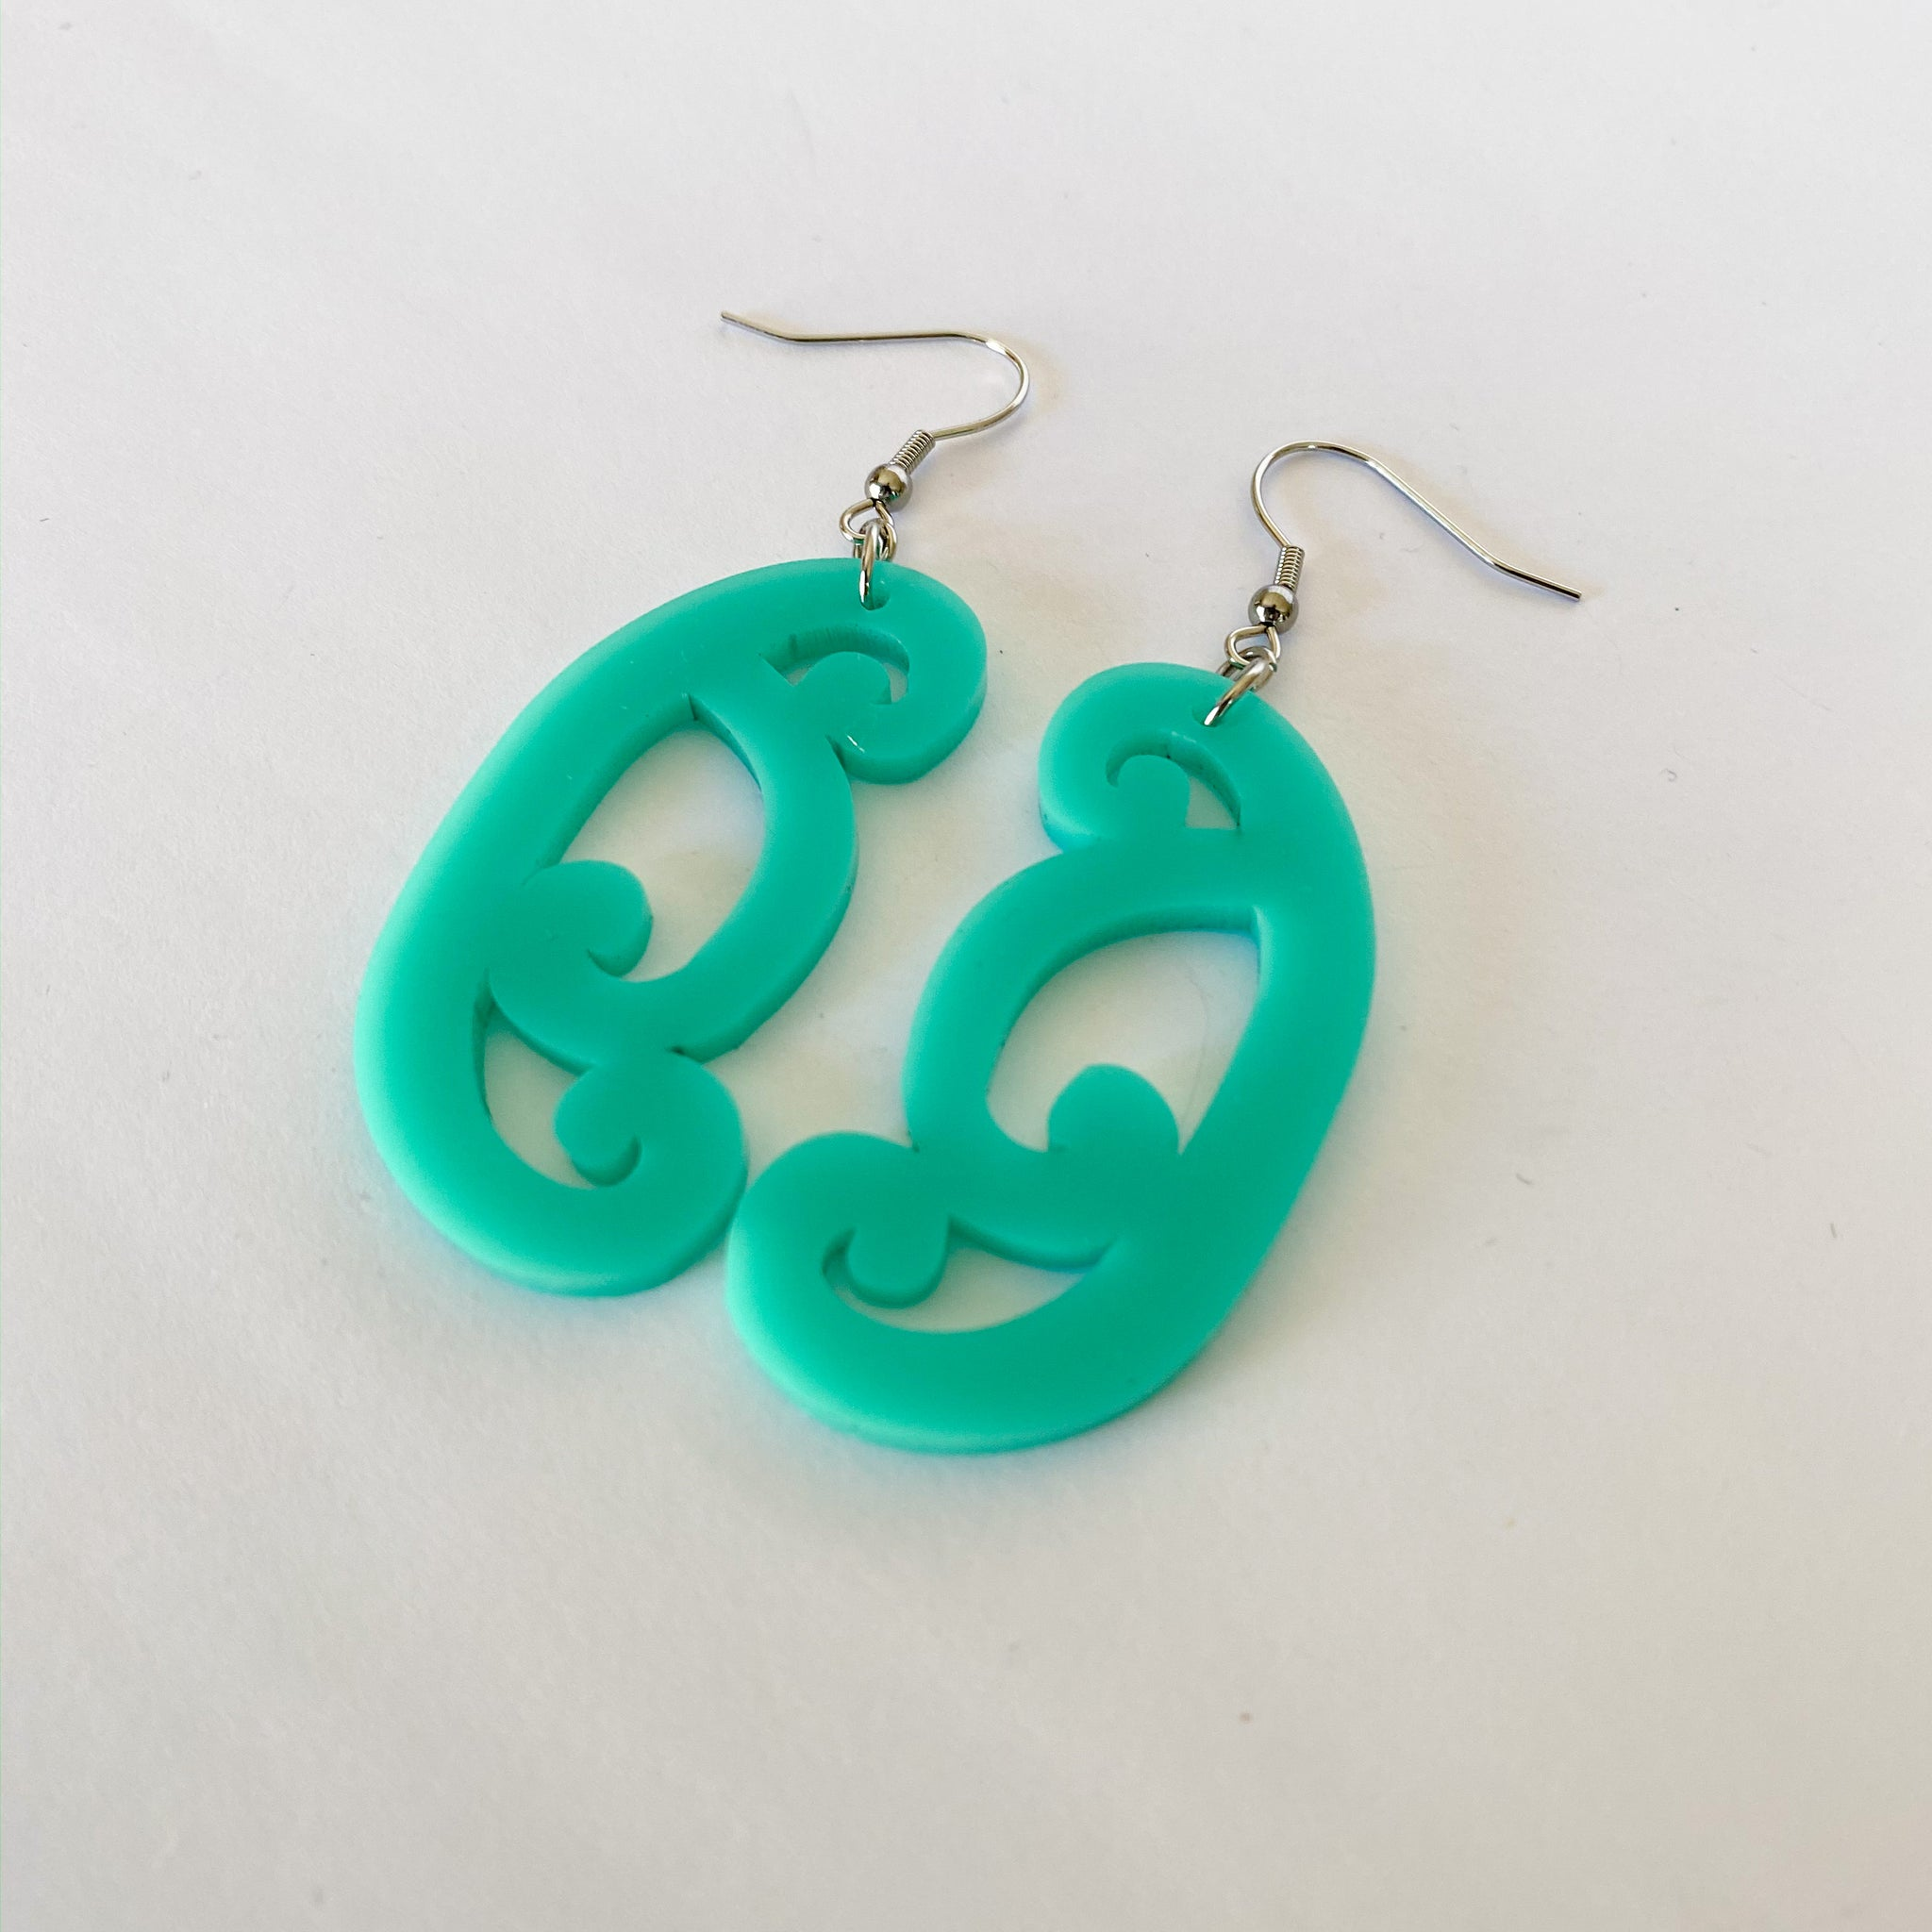 Earrings Teal, Koiri